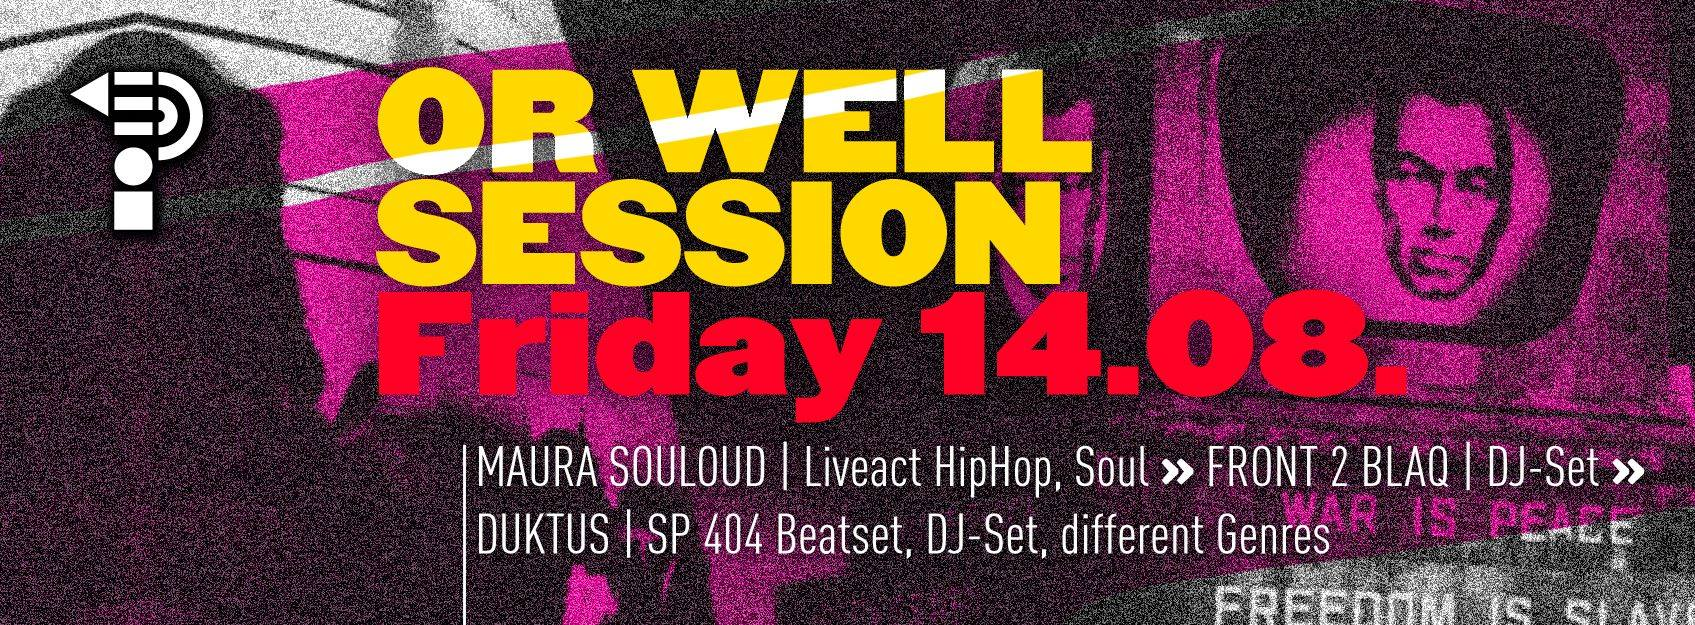 ORWELL Session w/ Duktus, Front2Blaq, Maura Souloud